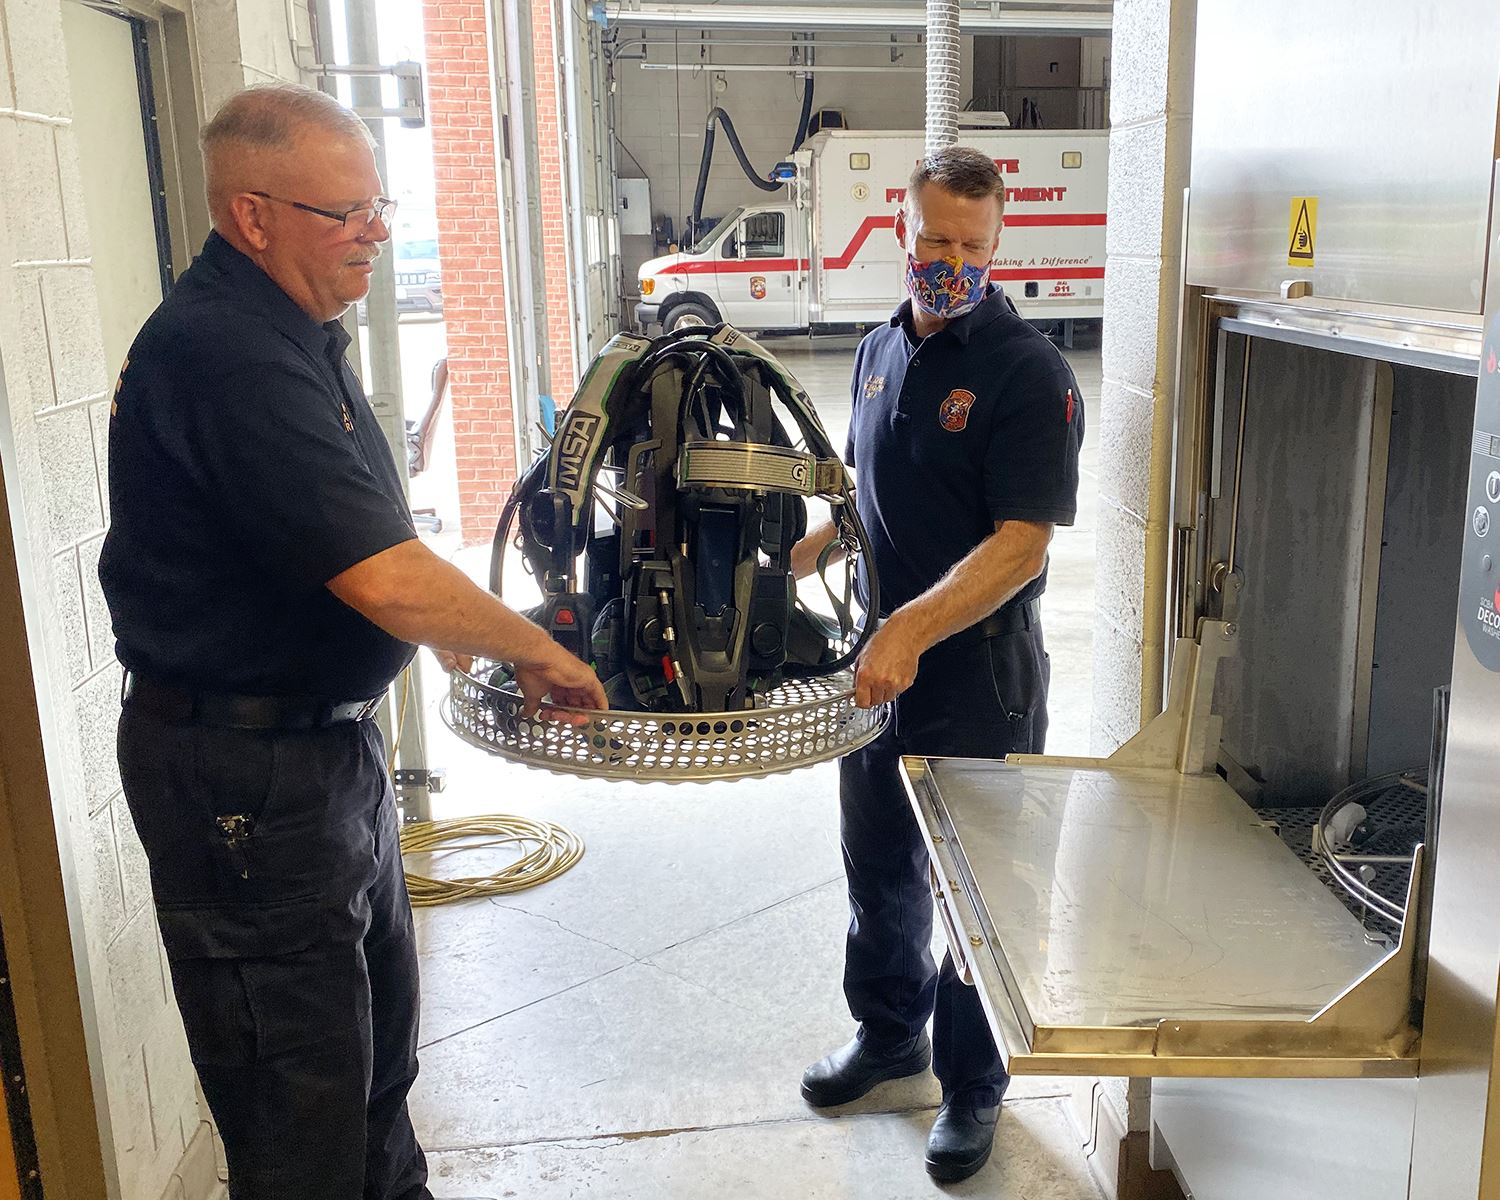 Mesquite Fire - placing SCBA in washer 2